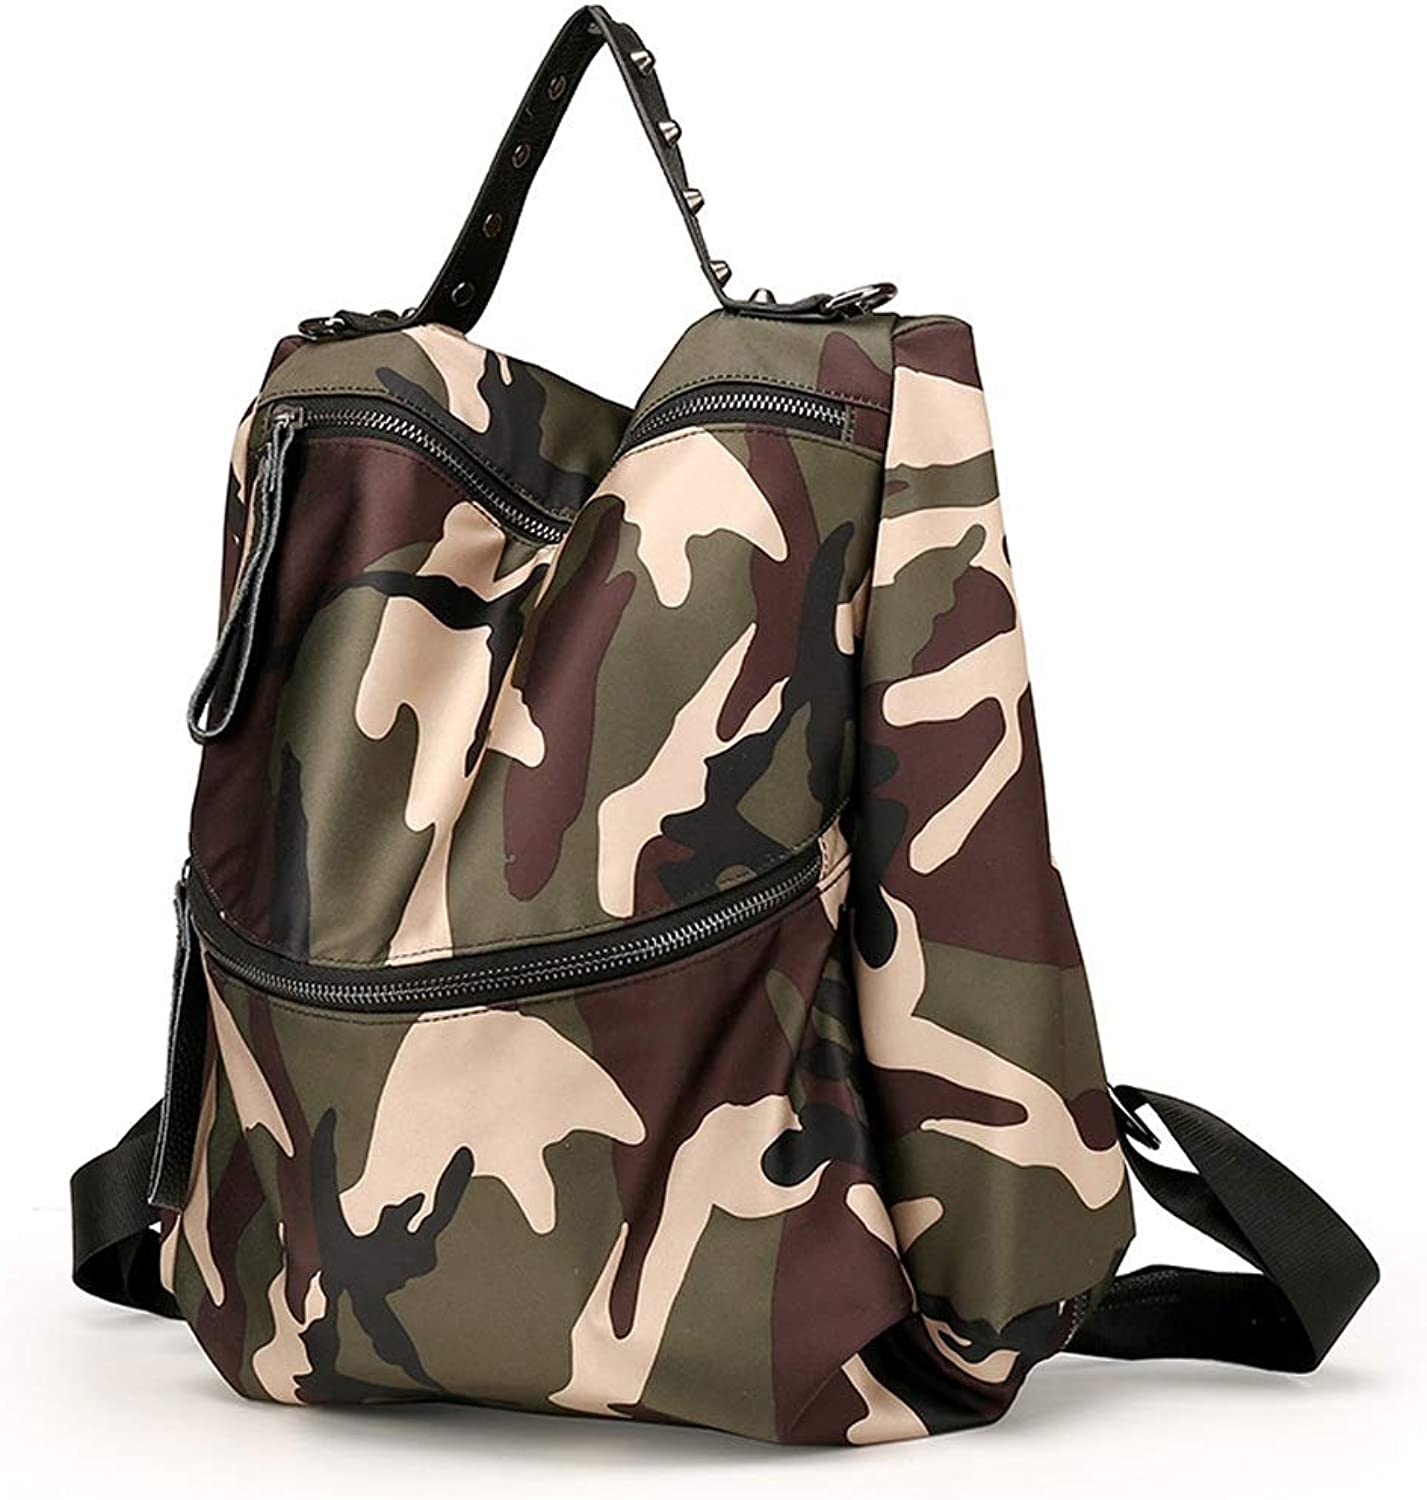 IF.HLMF Female Nylon Backpack Fashion Waterproof Dayback College Sport Travel Shoulder Bags for Teen Girls (Farbe   Camouflage)